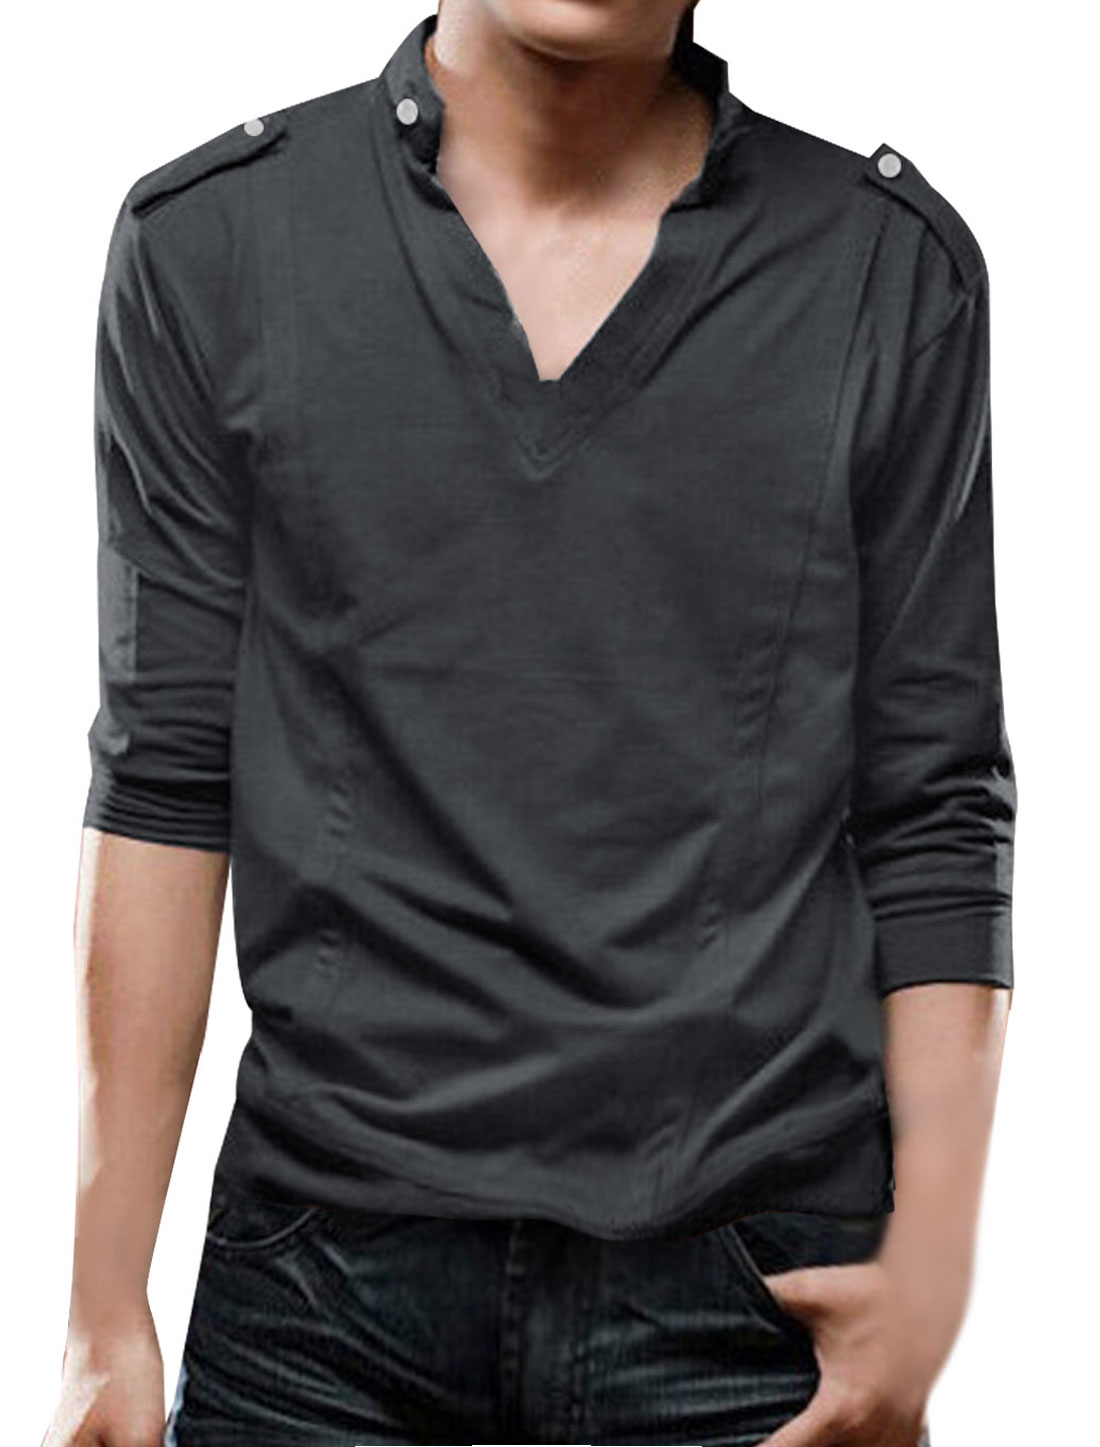 Mens Dark Gray V Neckline Solid Color Button Decor Collar Fall Shirt S